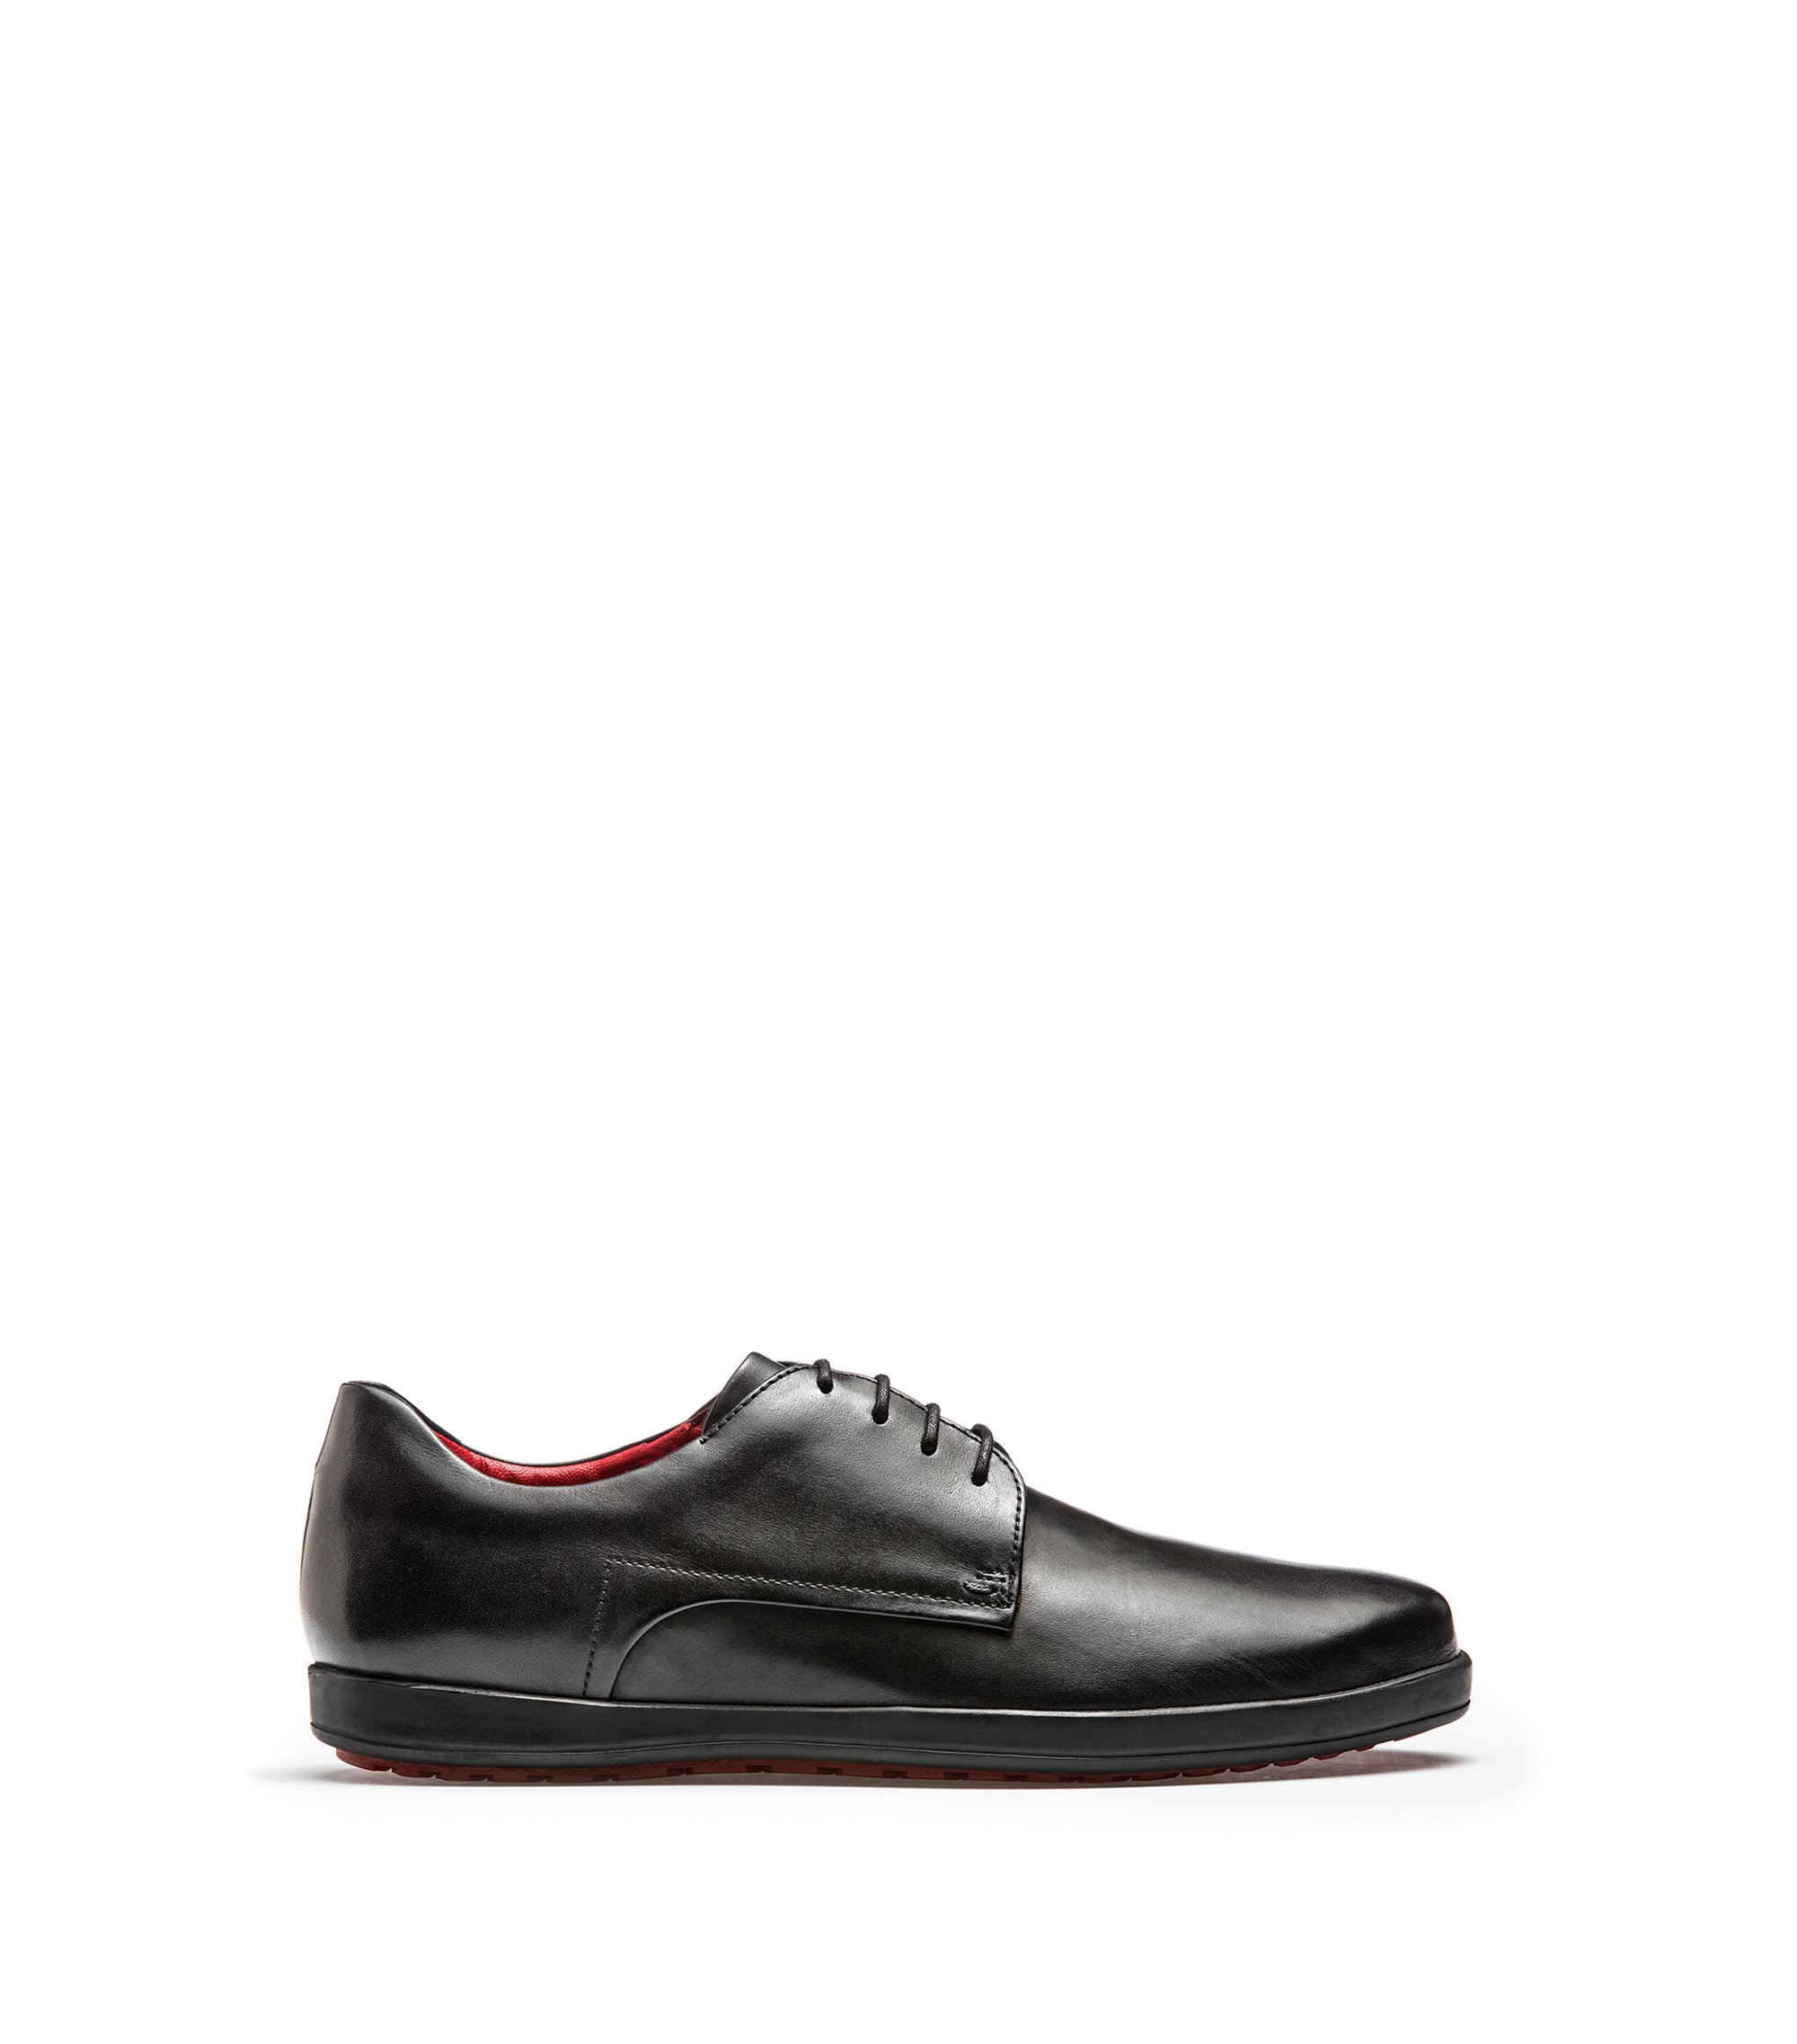 Calf-leather Derby shoes with rubber sole, Nero